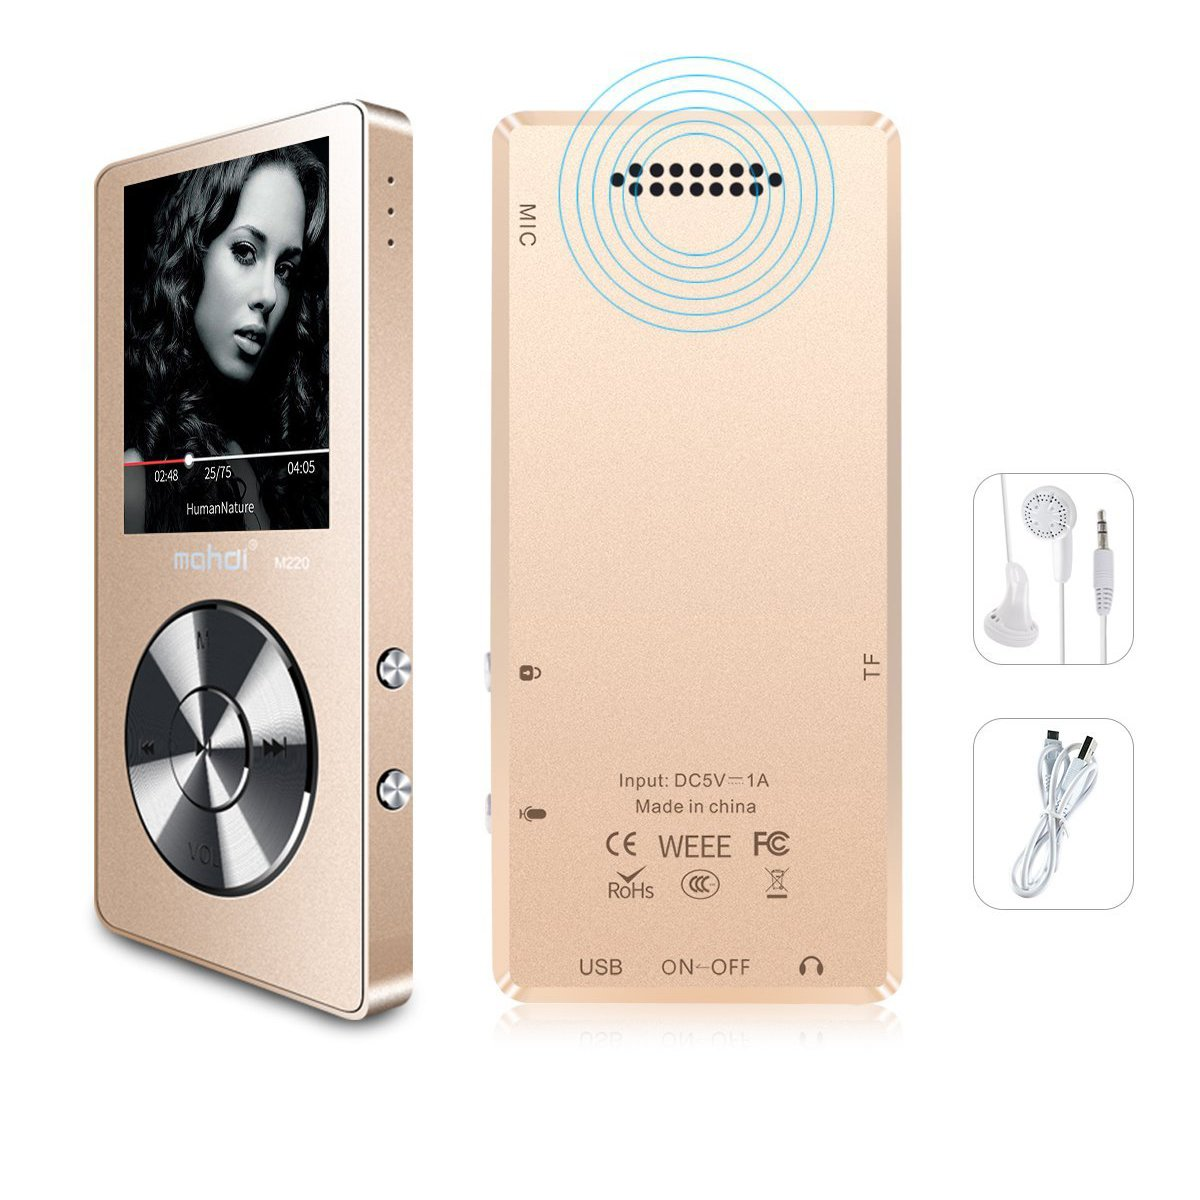 Hifi Players The Cheapest Price Original Metal Bluetooth Mp3 Player Lossless Hifi Mp3 Music Player With High Quality Sound Out Speaker E-book Fm Radio Clock